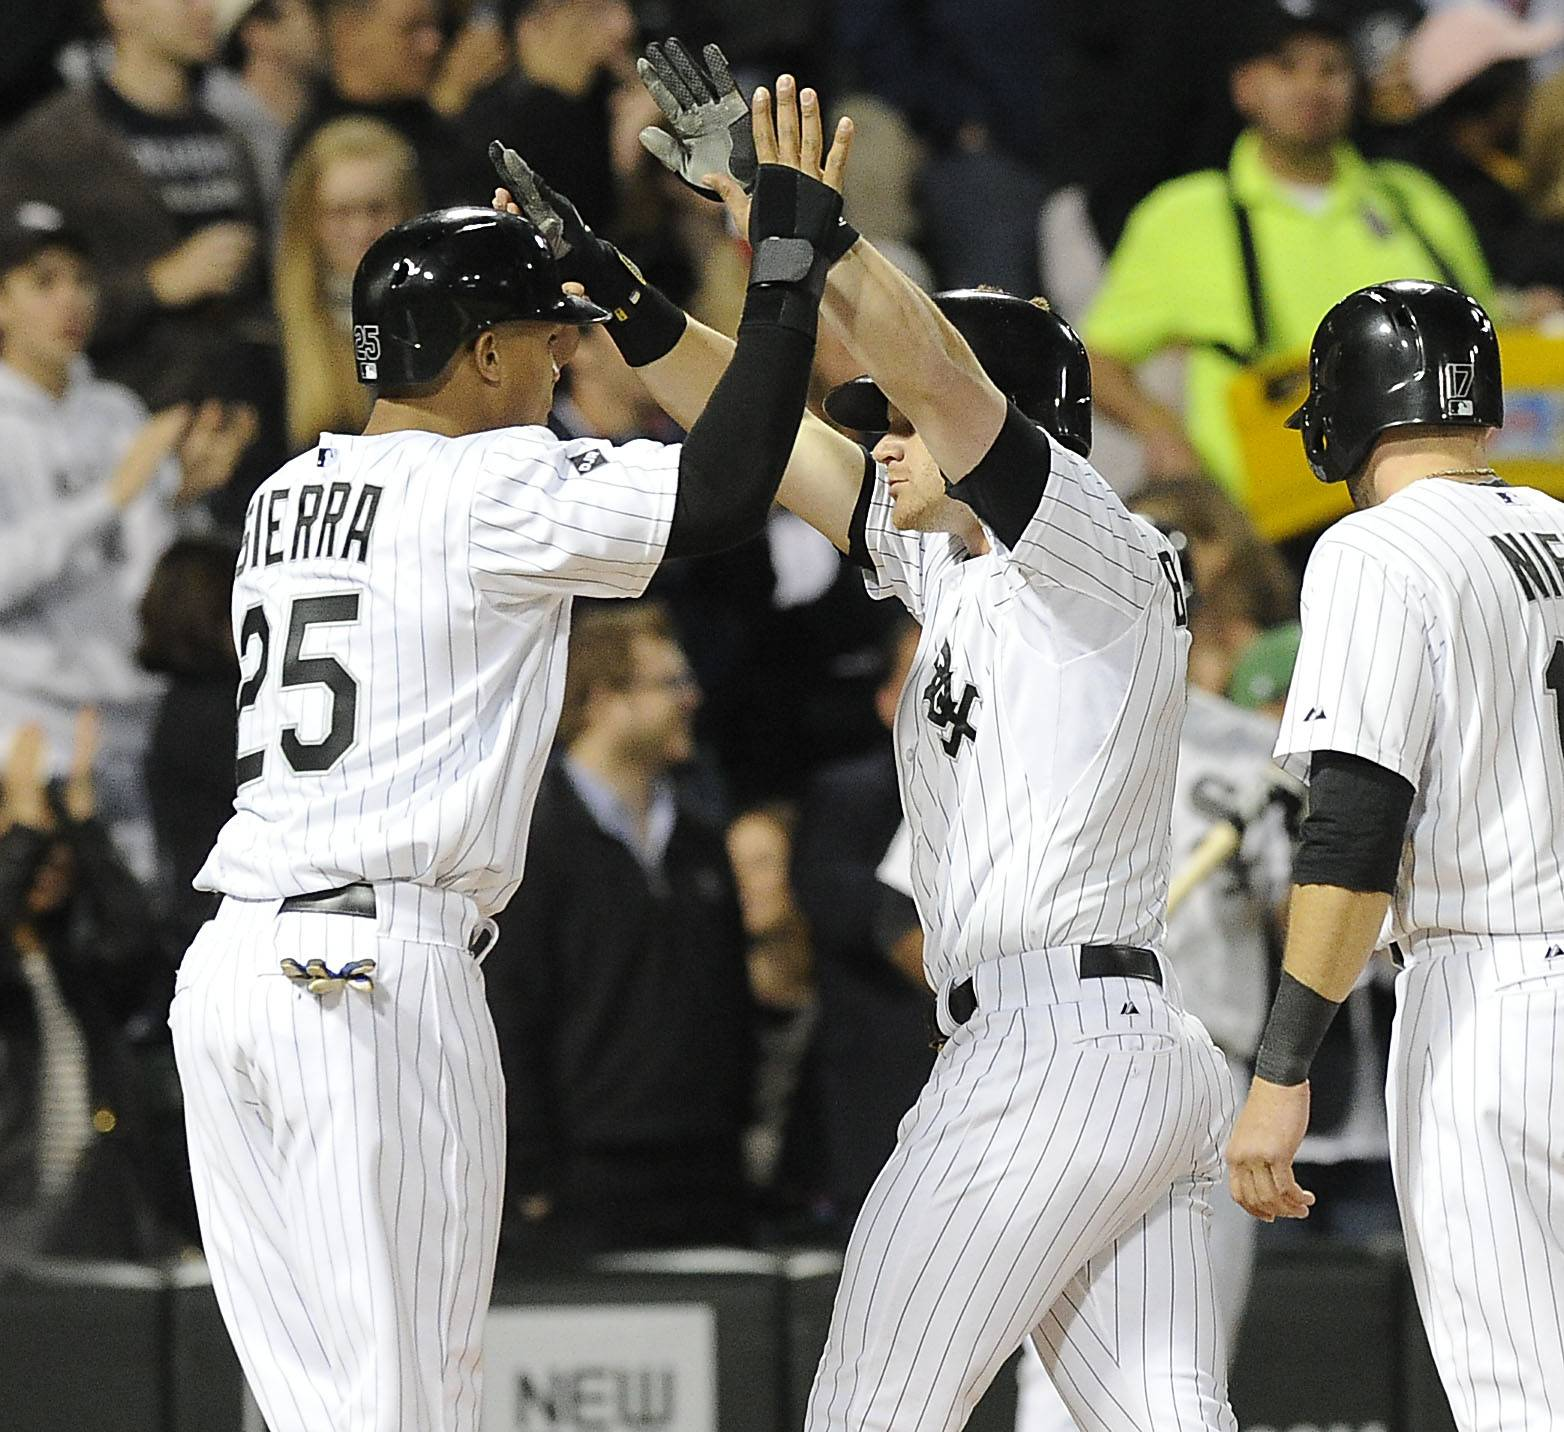 Mark Welsh/mwelsh@dailyherald.comChicago White Sox's Gordon Beckham greets Moises Sierra at home plate after his three run homer in the fourth inning of the Crosstown Classic.